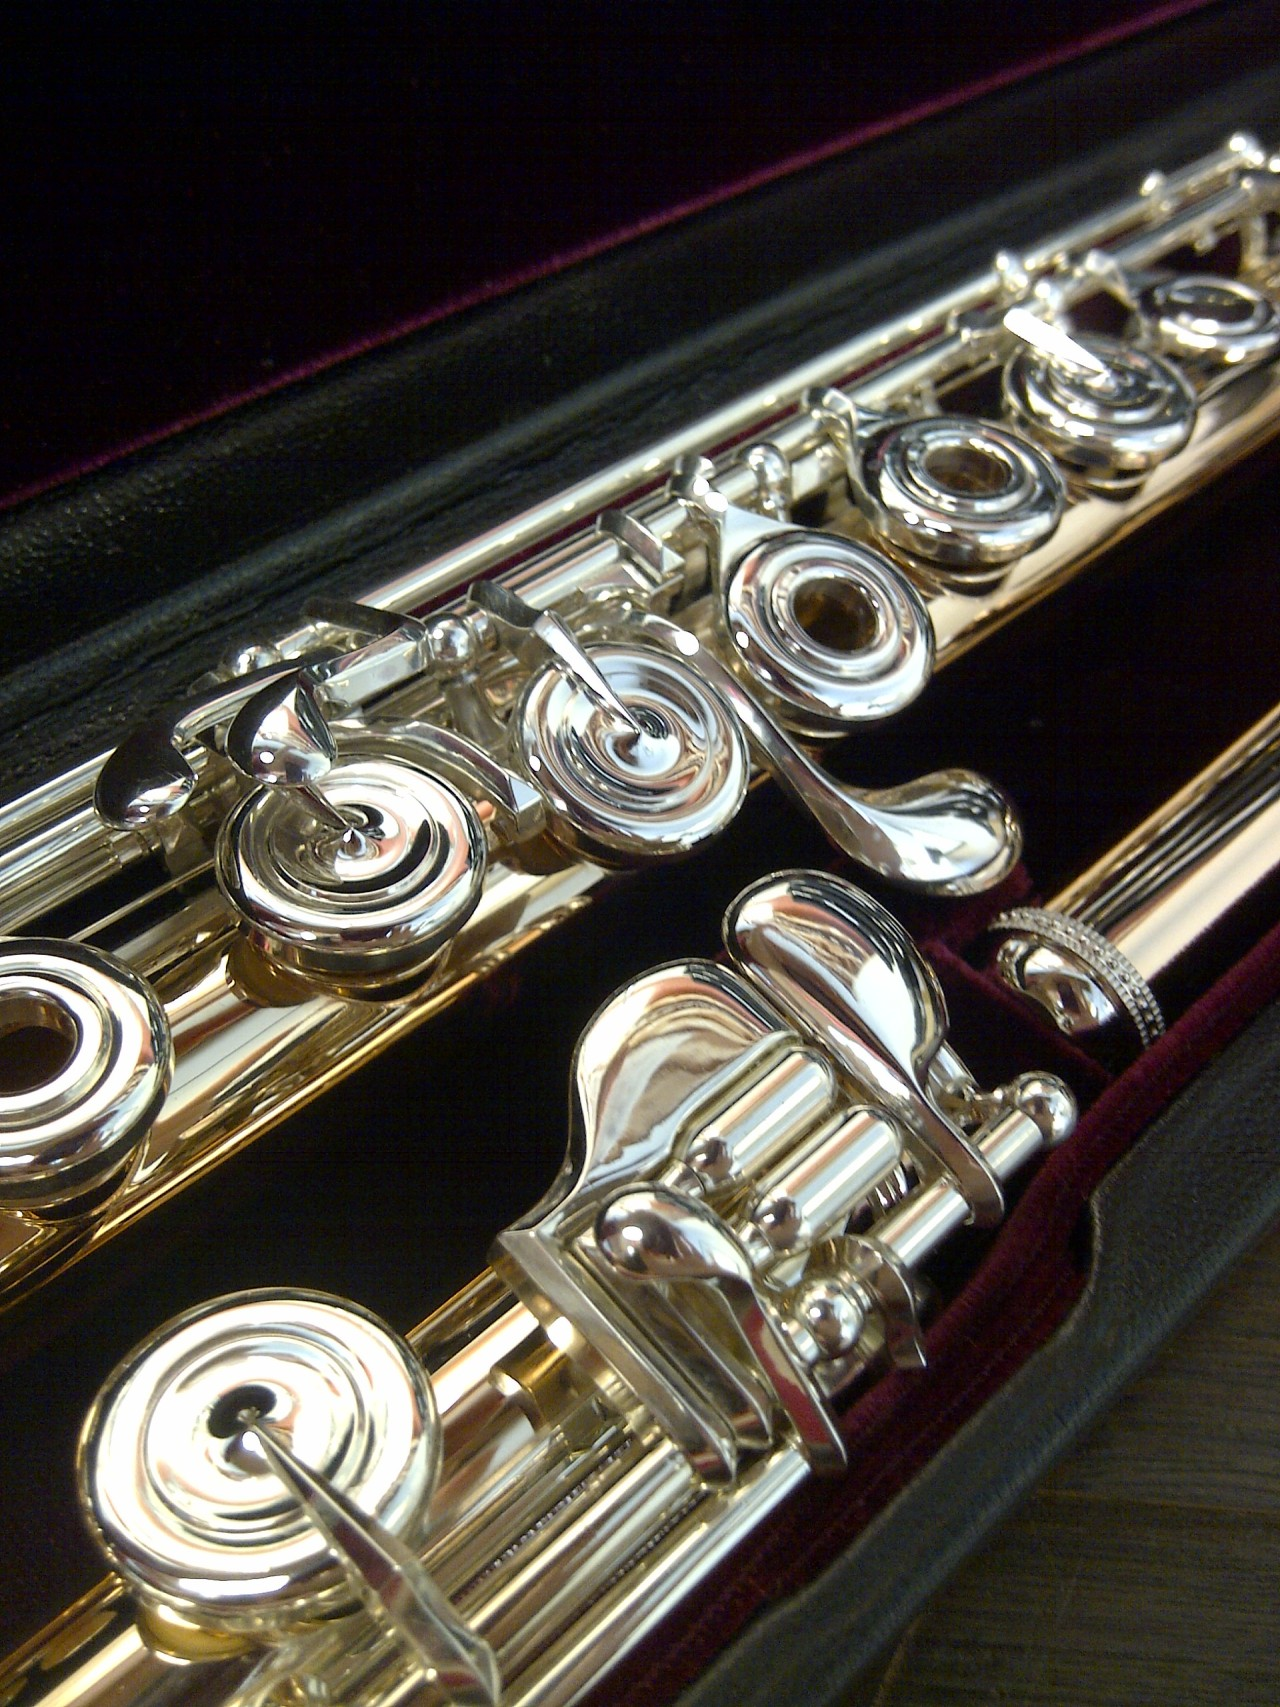 Question of the day: Each Powell flute is engraved with the logo in three different places — do you know where they are? We'll reveal the answer tomorrow, so there is plenty of time to answer!